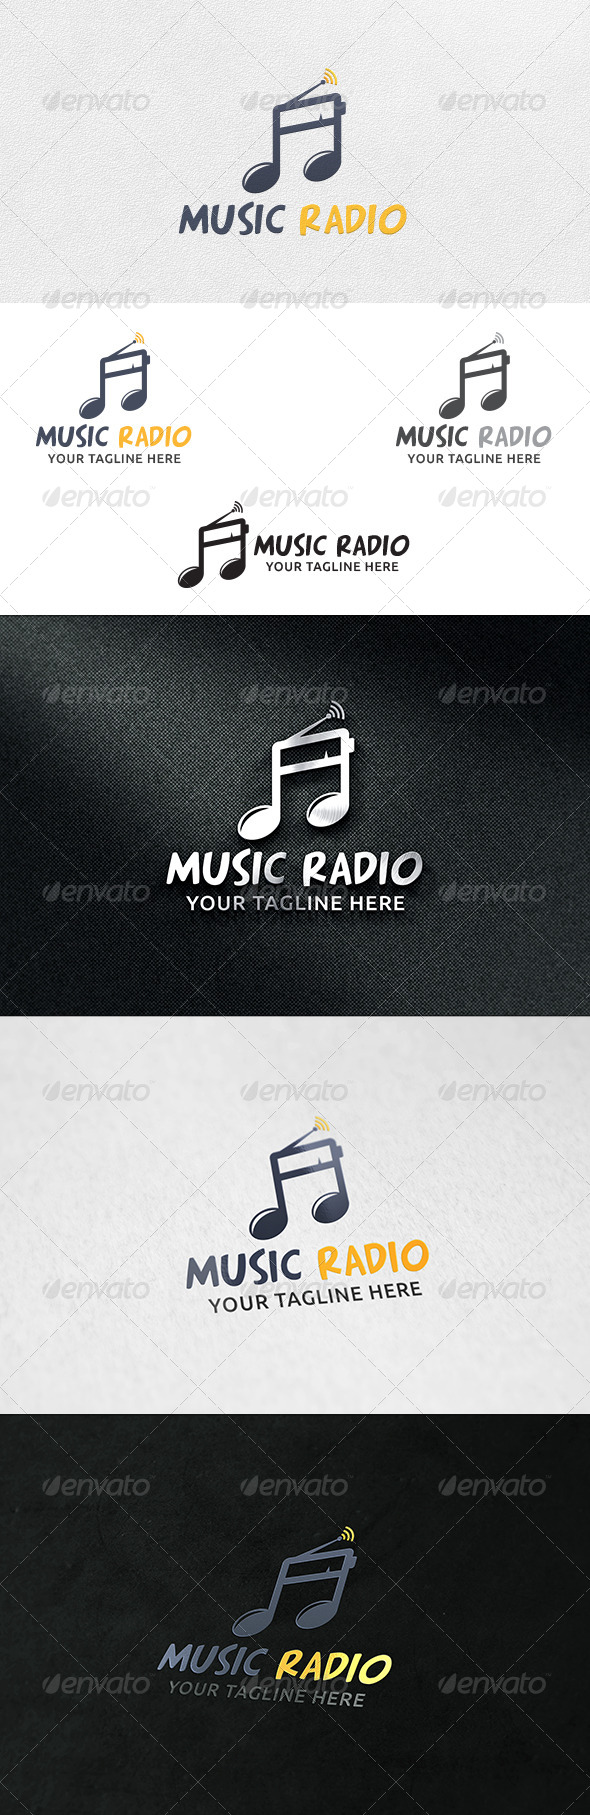 GraphicRiver Music Radio Logo Template 6661898